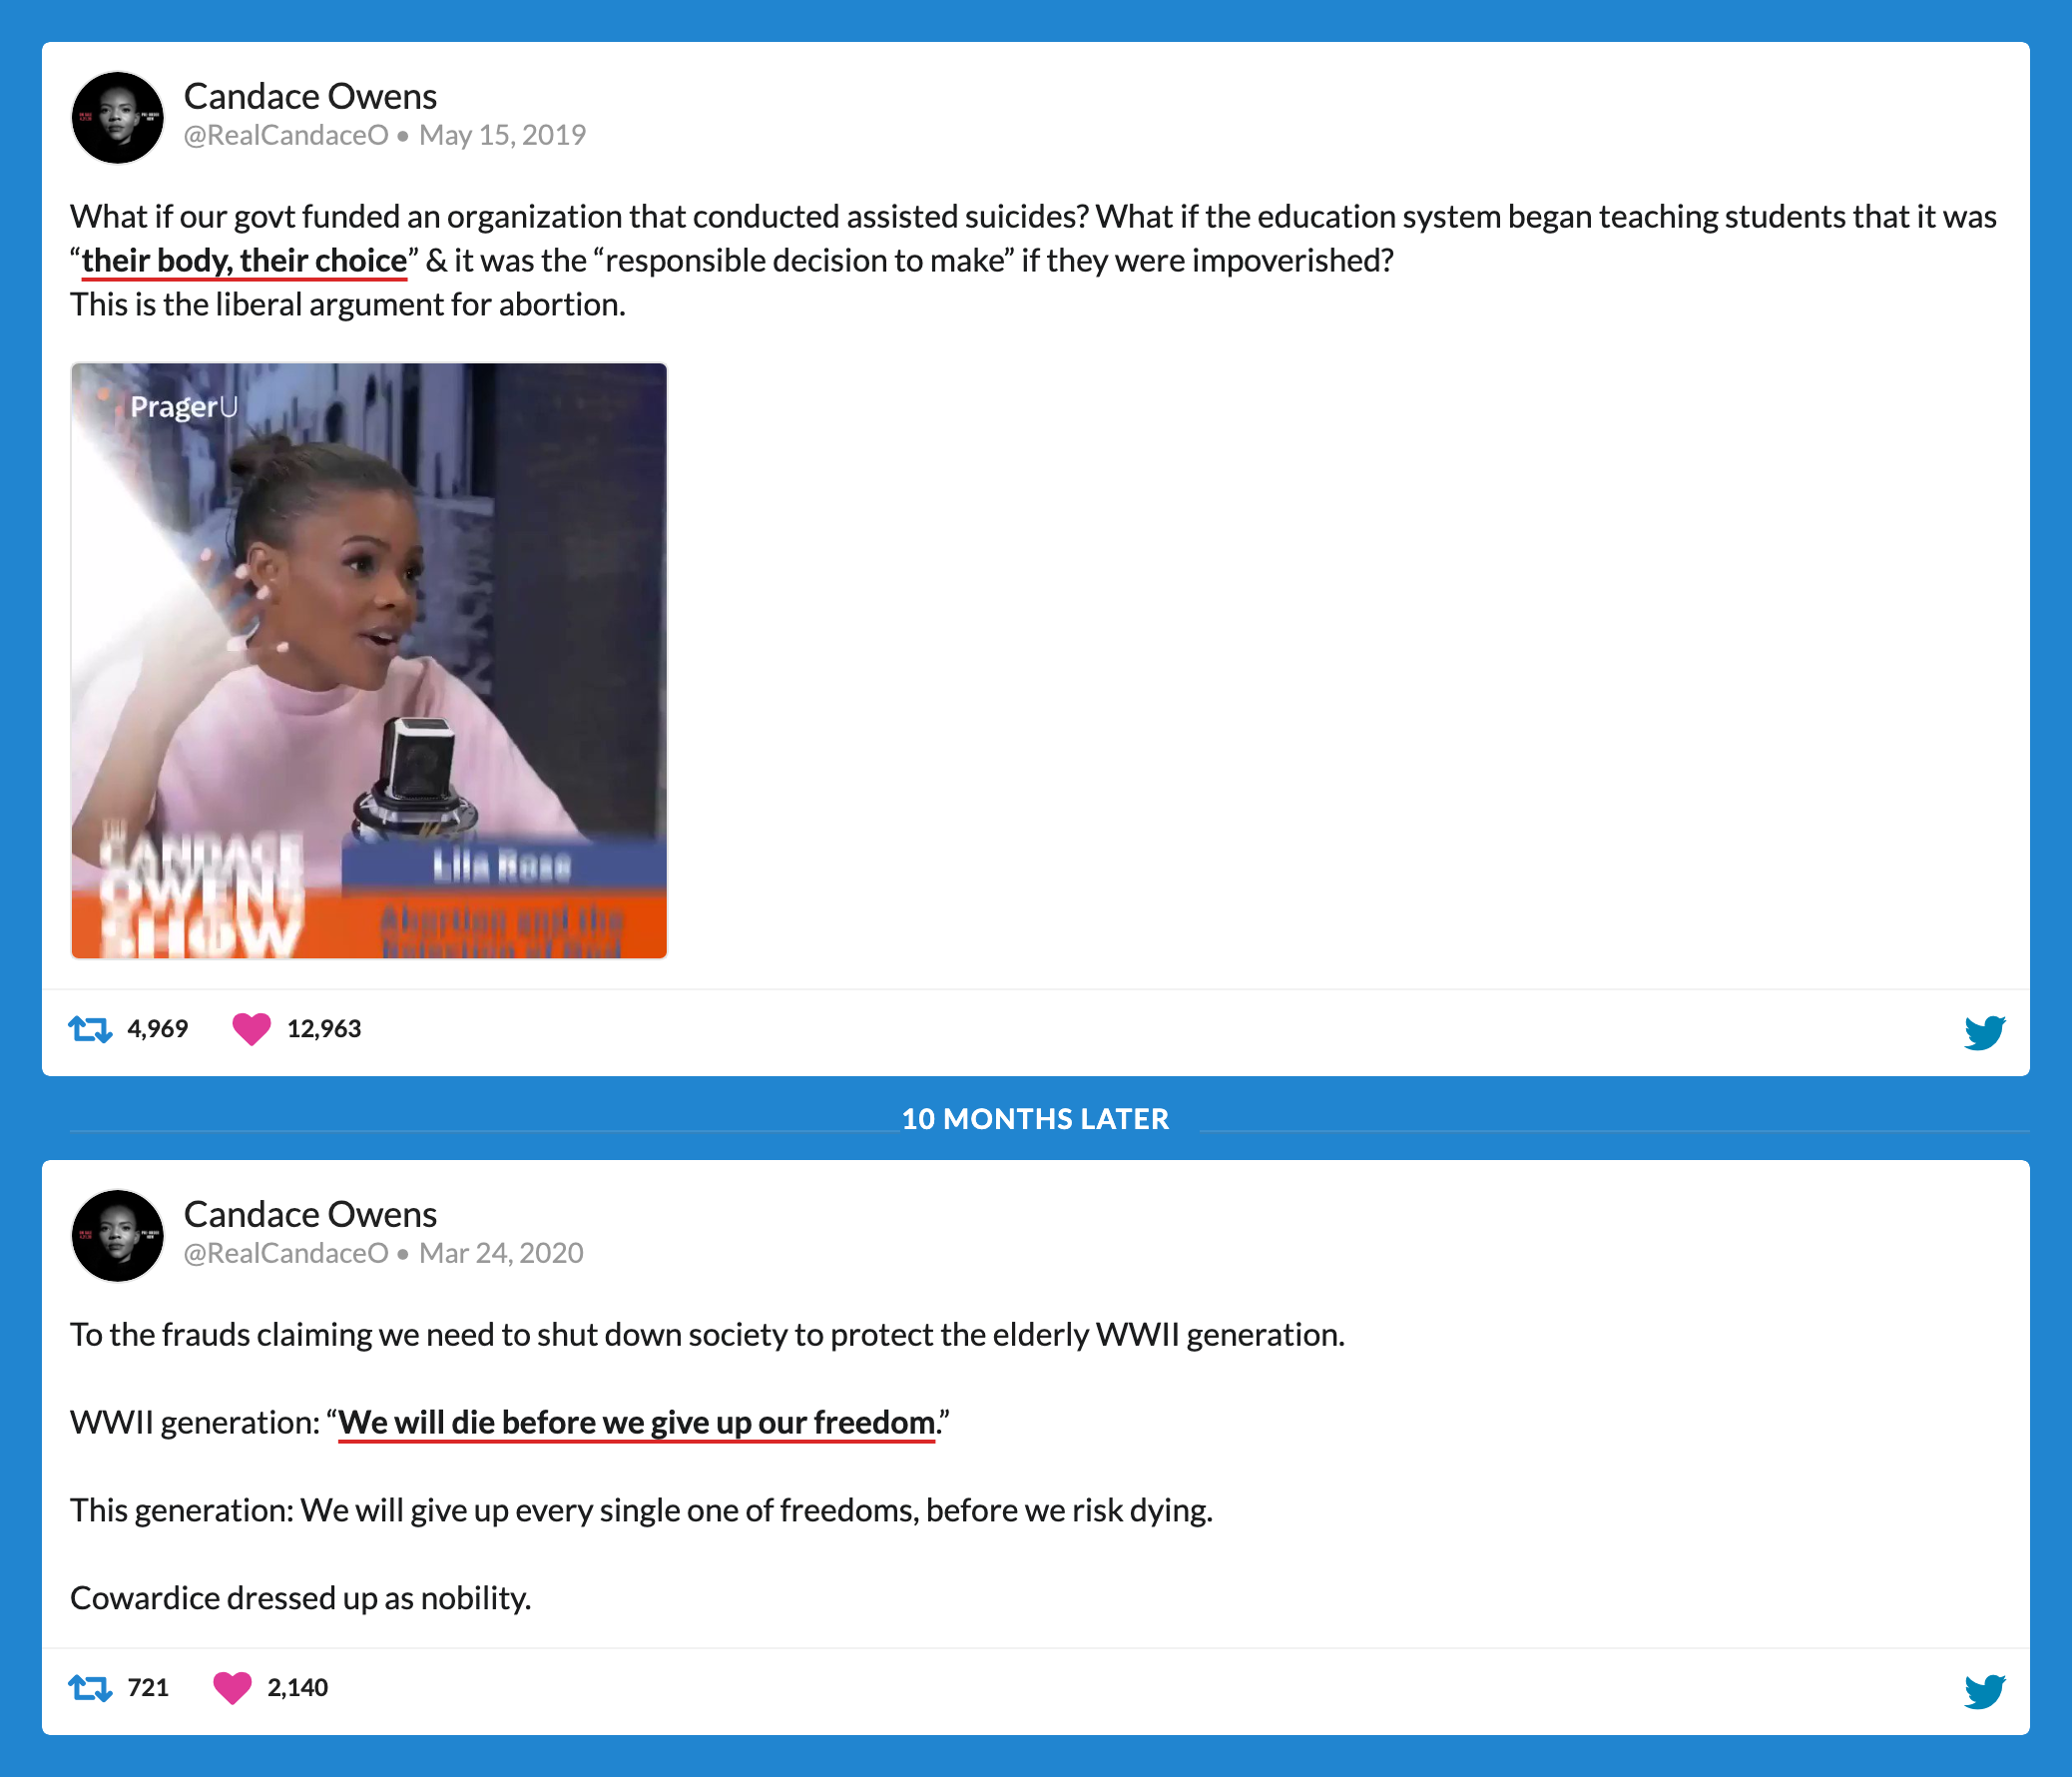 Doublethink by Candace Owens